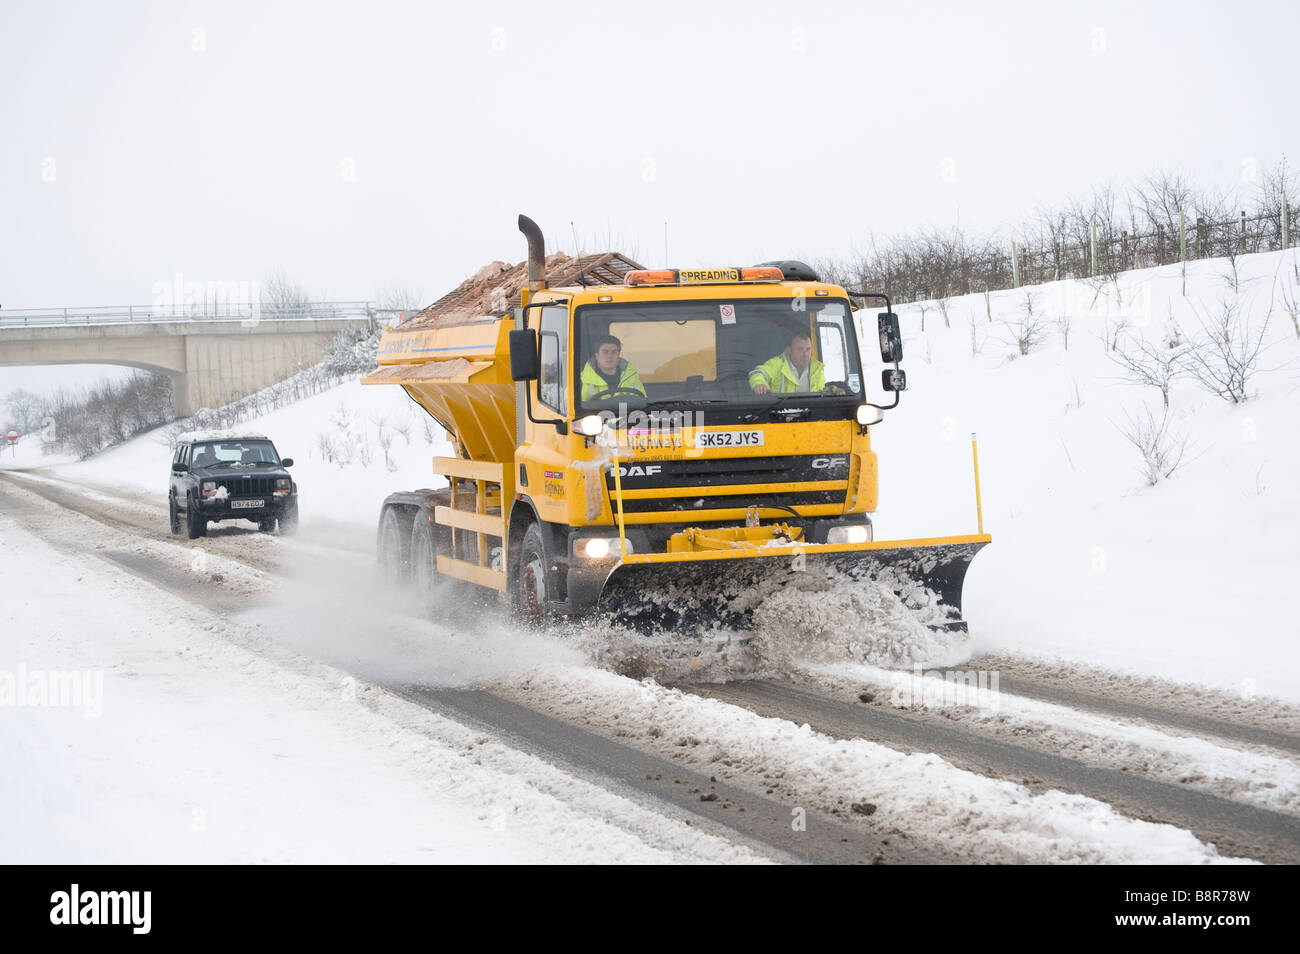 Snow Plough Car >> Gritter lorry with snow plough fitted to the front clearing the roads Stock Photo, Royalty Free ...